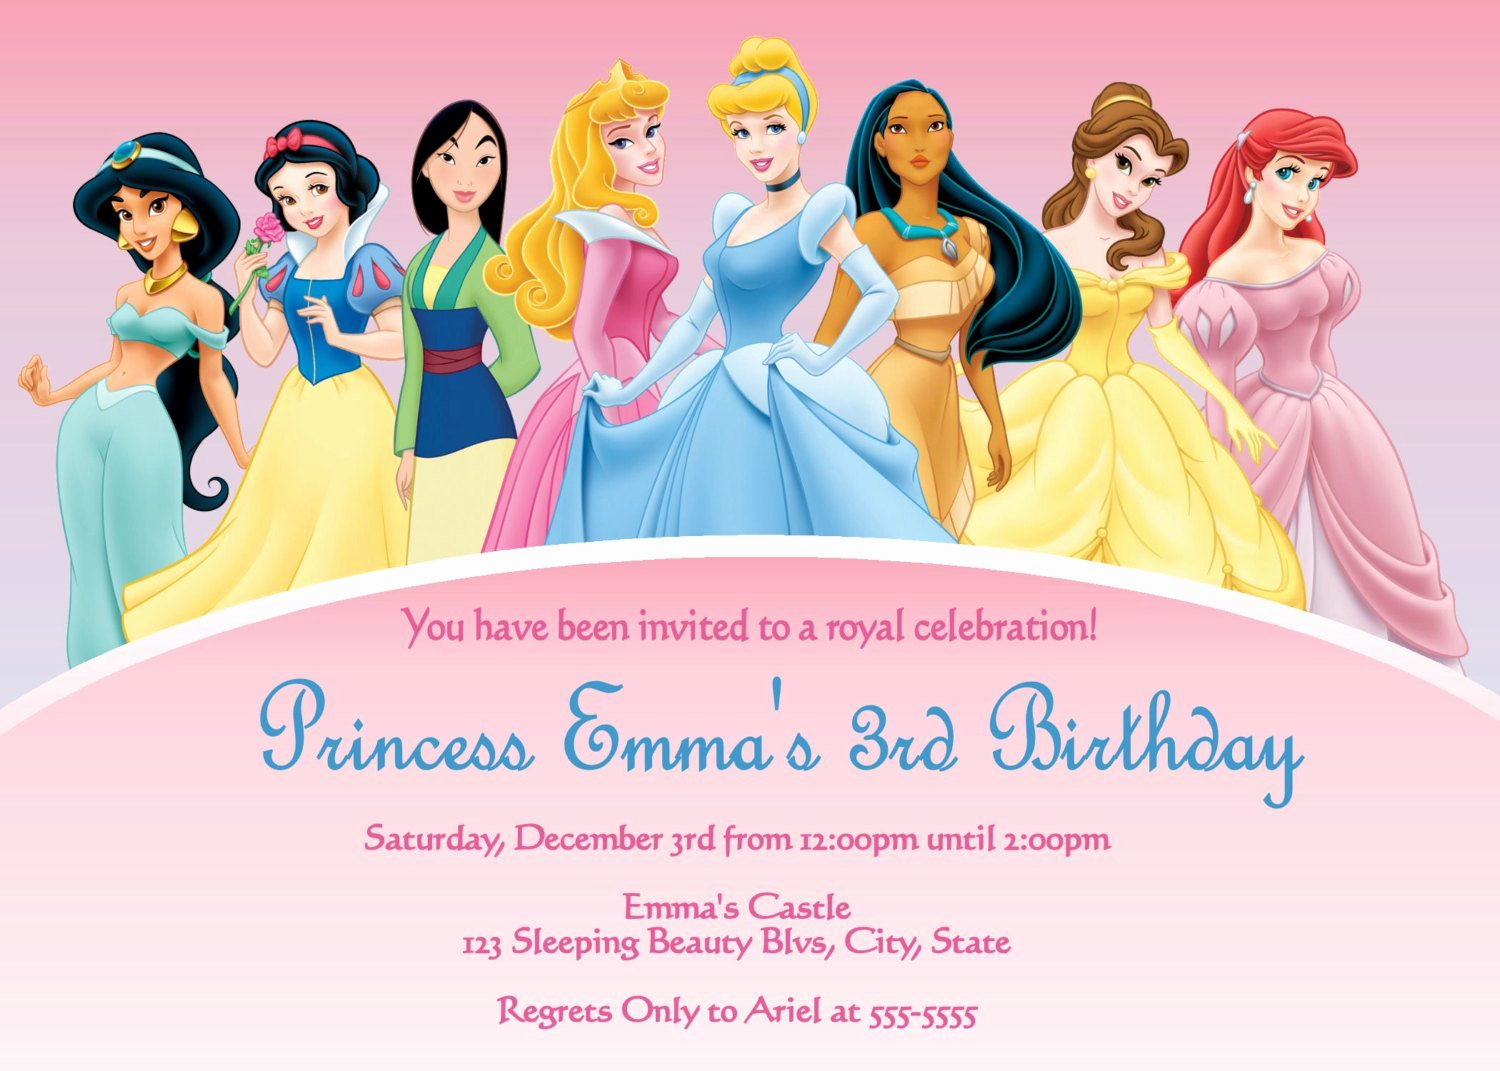 Disney Princess Invitation Templates Free Beautiful Disney Princesses Birthday Invitations Disney Princess